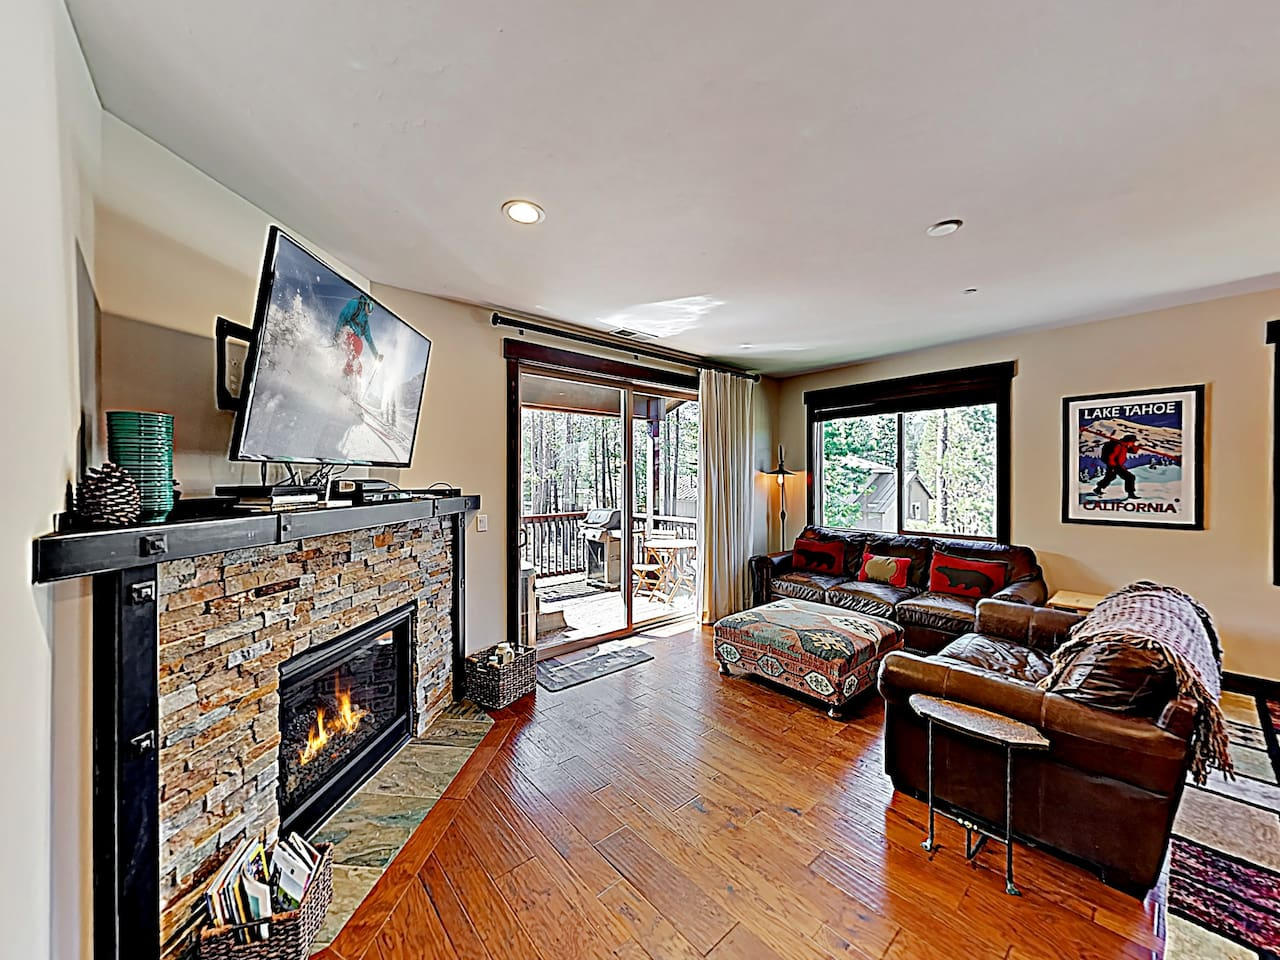 Welcome to Truckee! This condo at The Boulders is professionally managed by TurnKey Vacation Rentals.